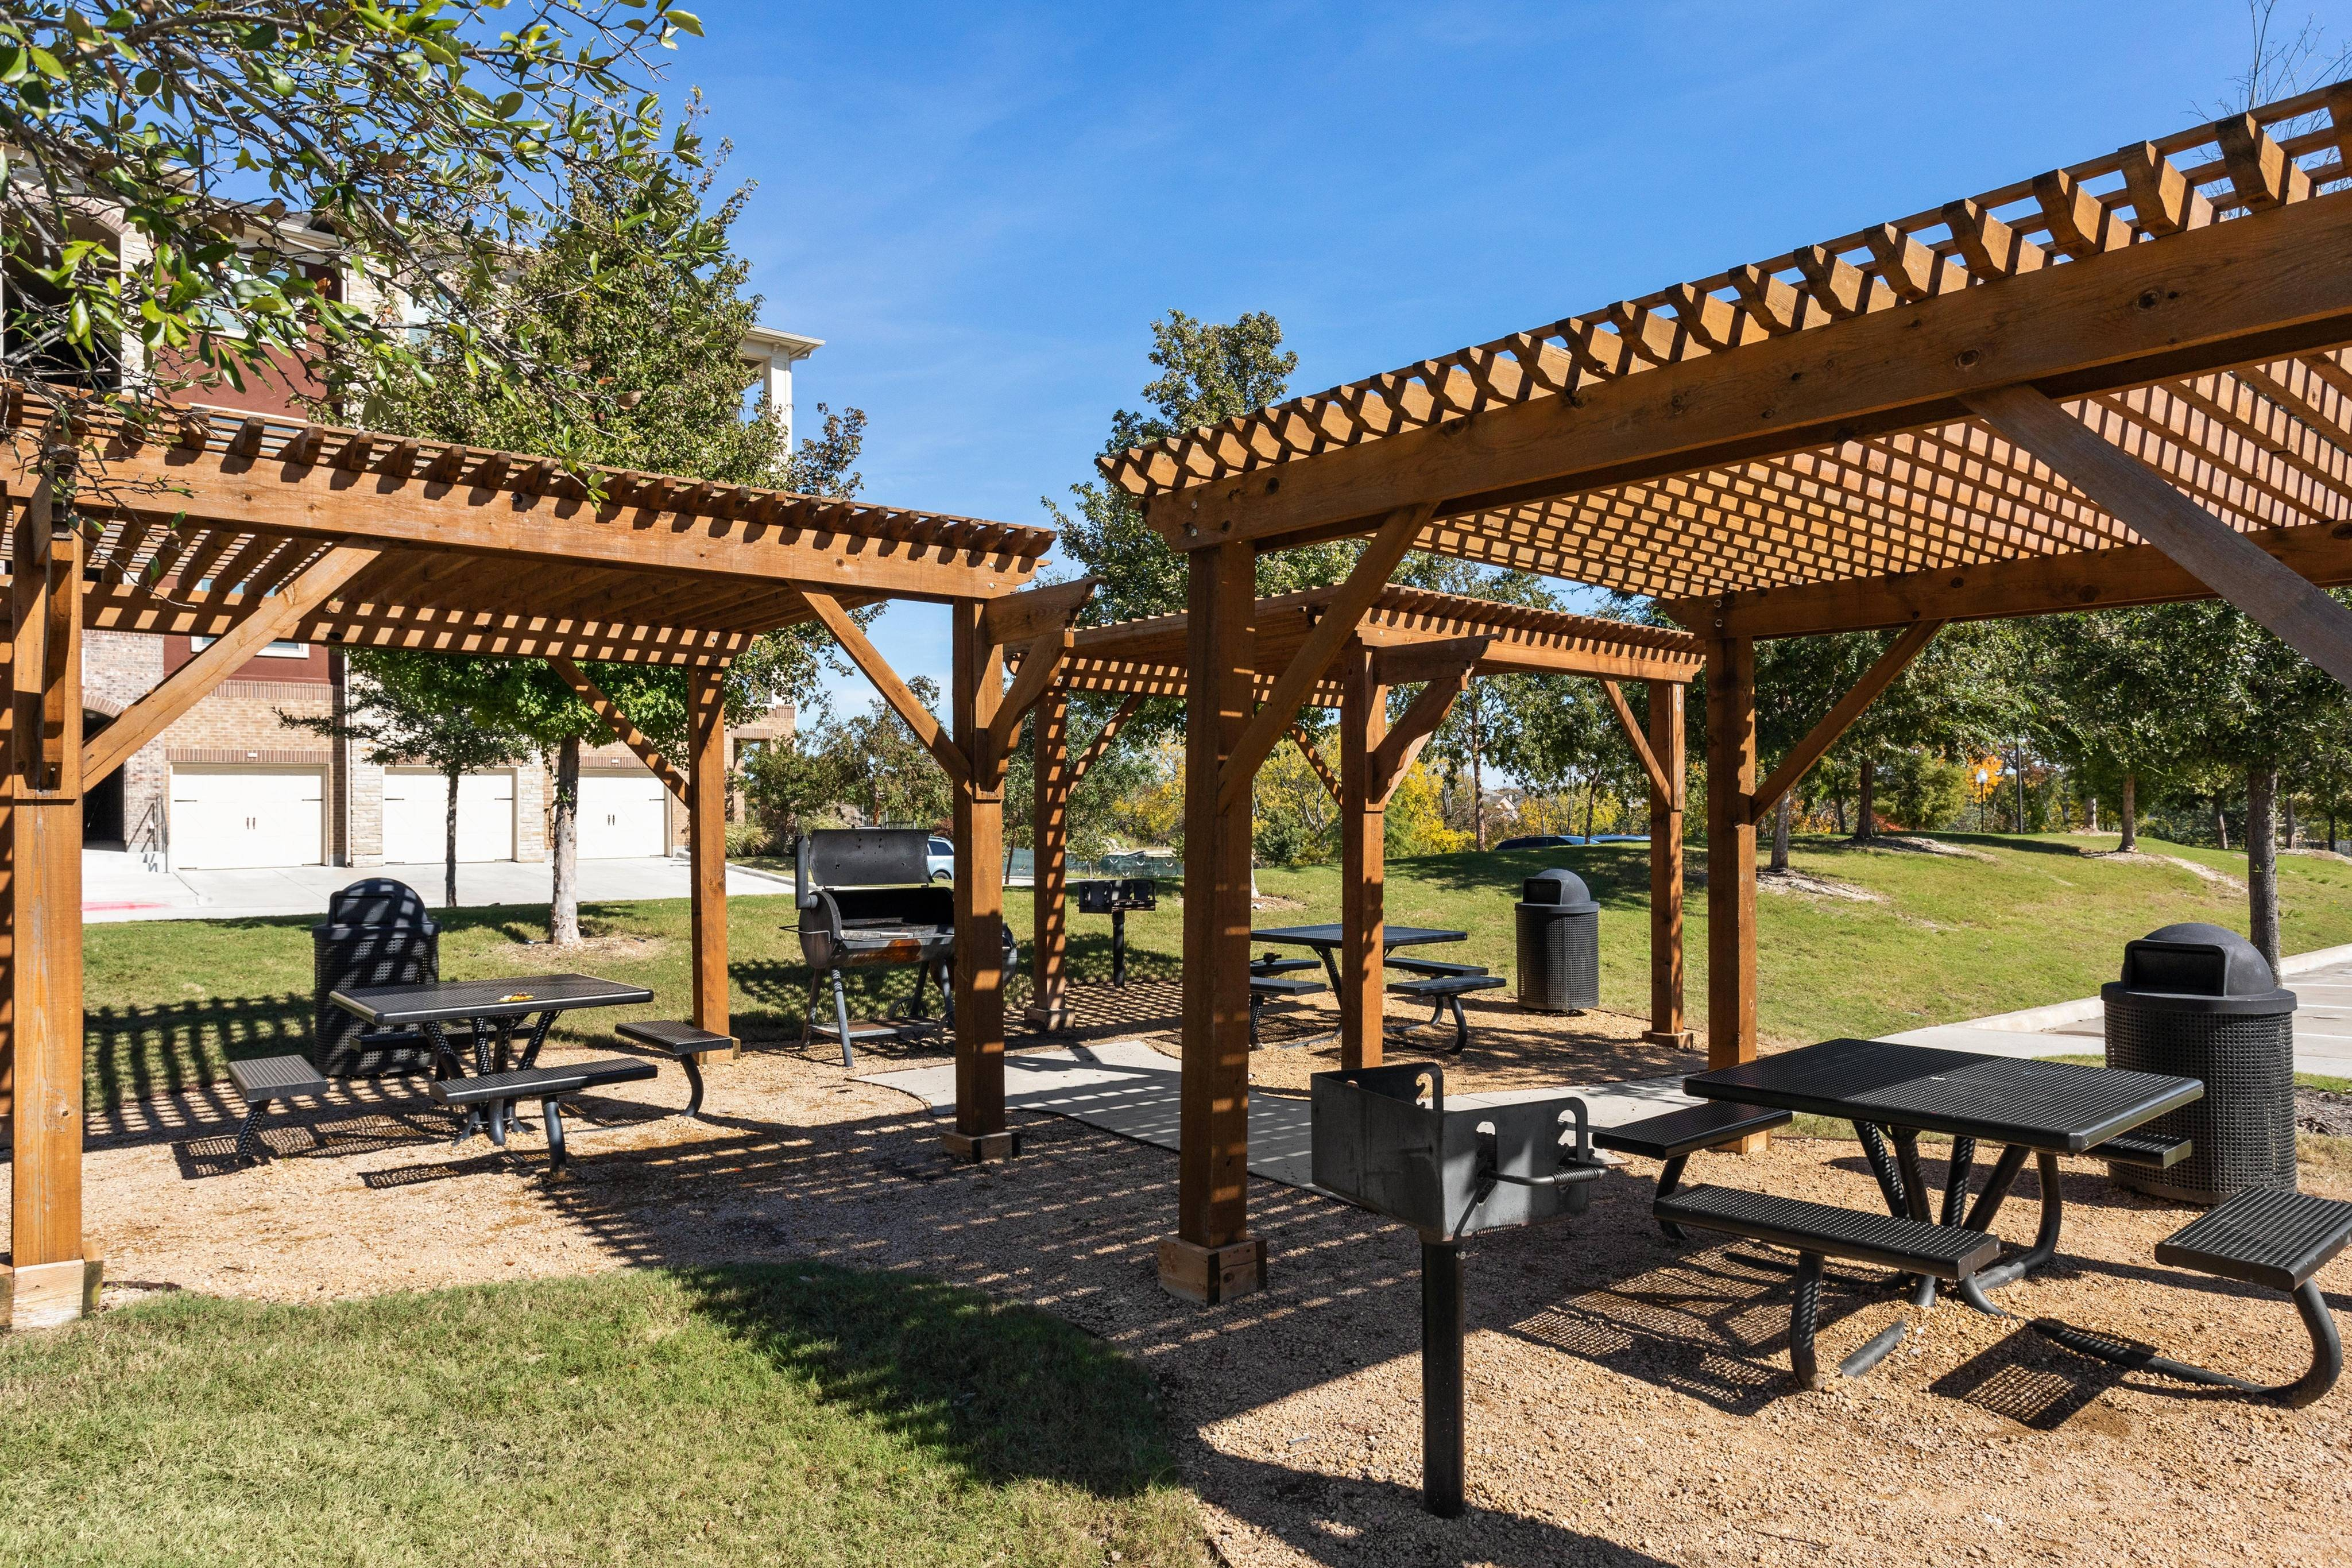 Courtyard with Outdoor Grills and Picnic Tables